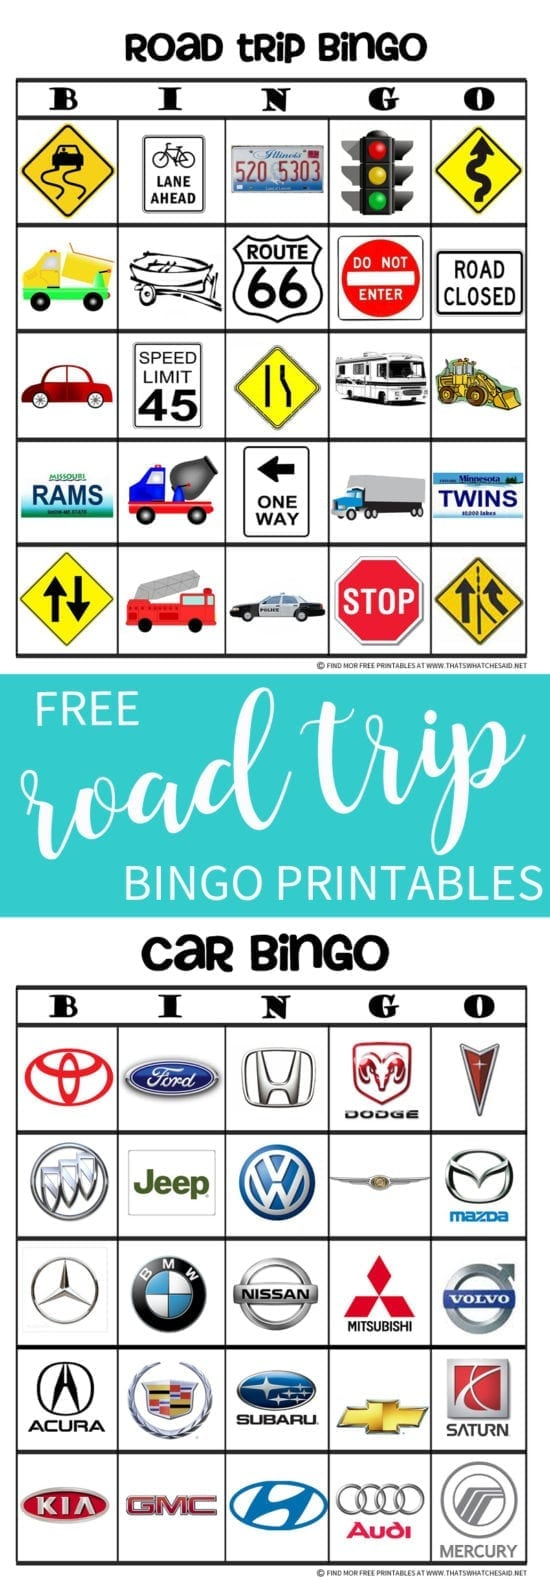 Combine I Spy with Bingo for this fun Road Trip Bingo game! Free Printables included.